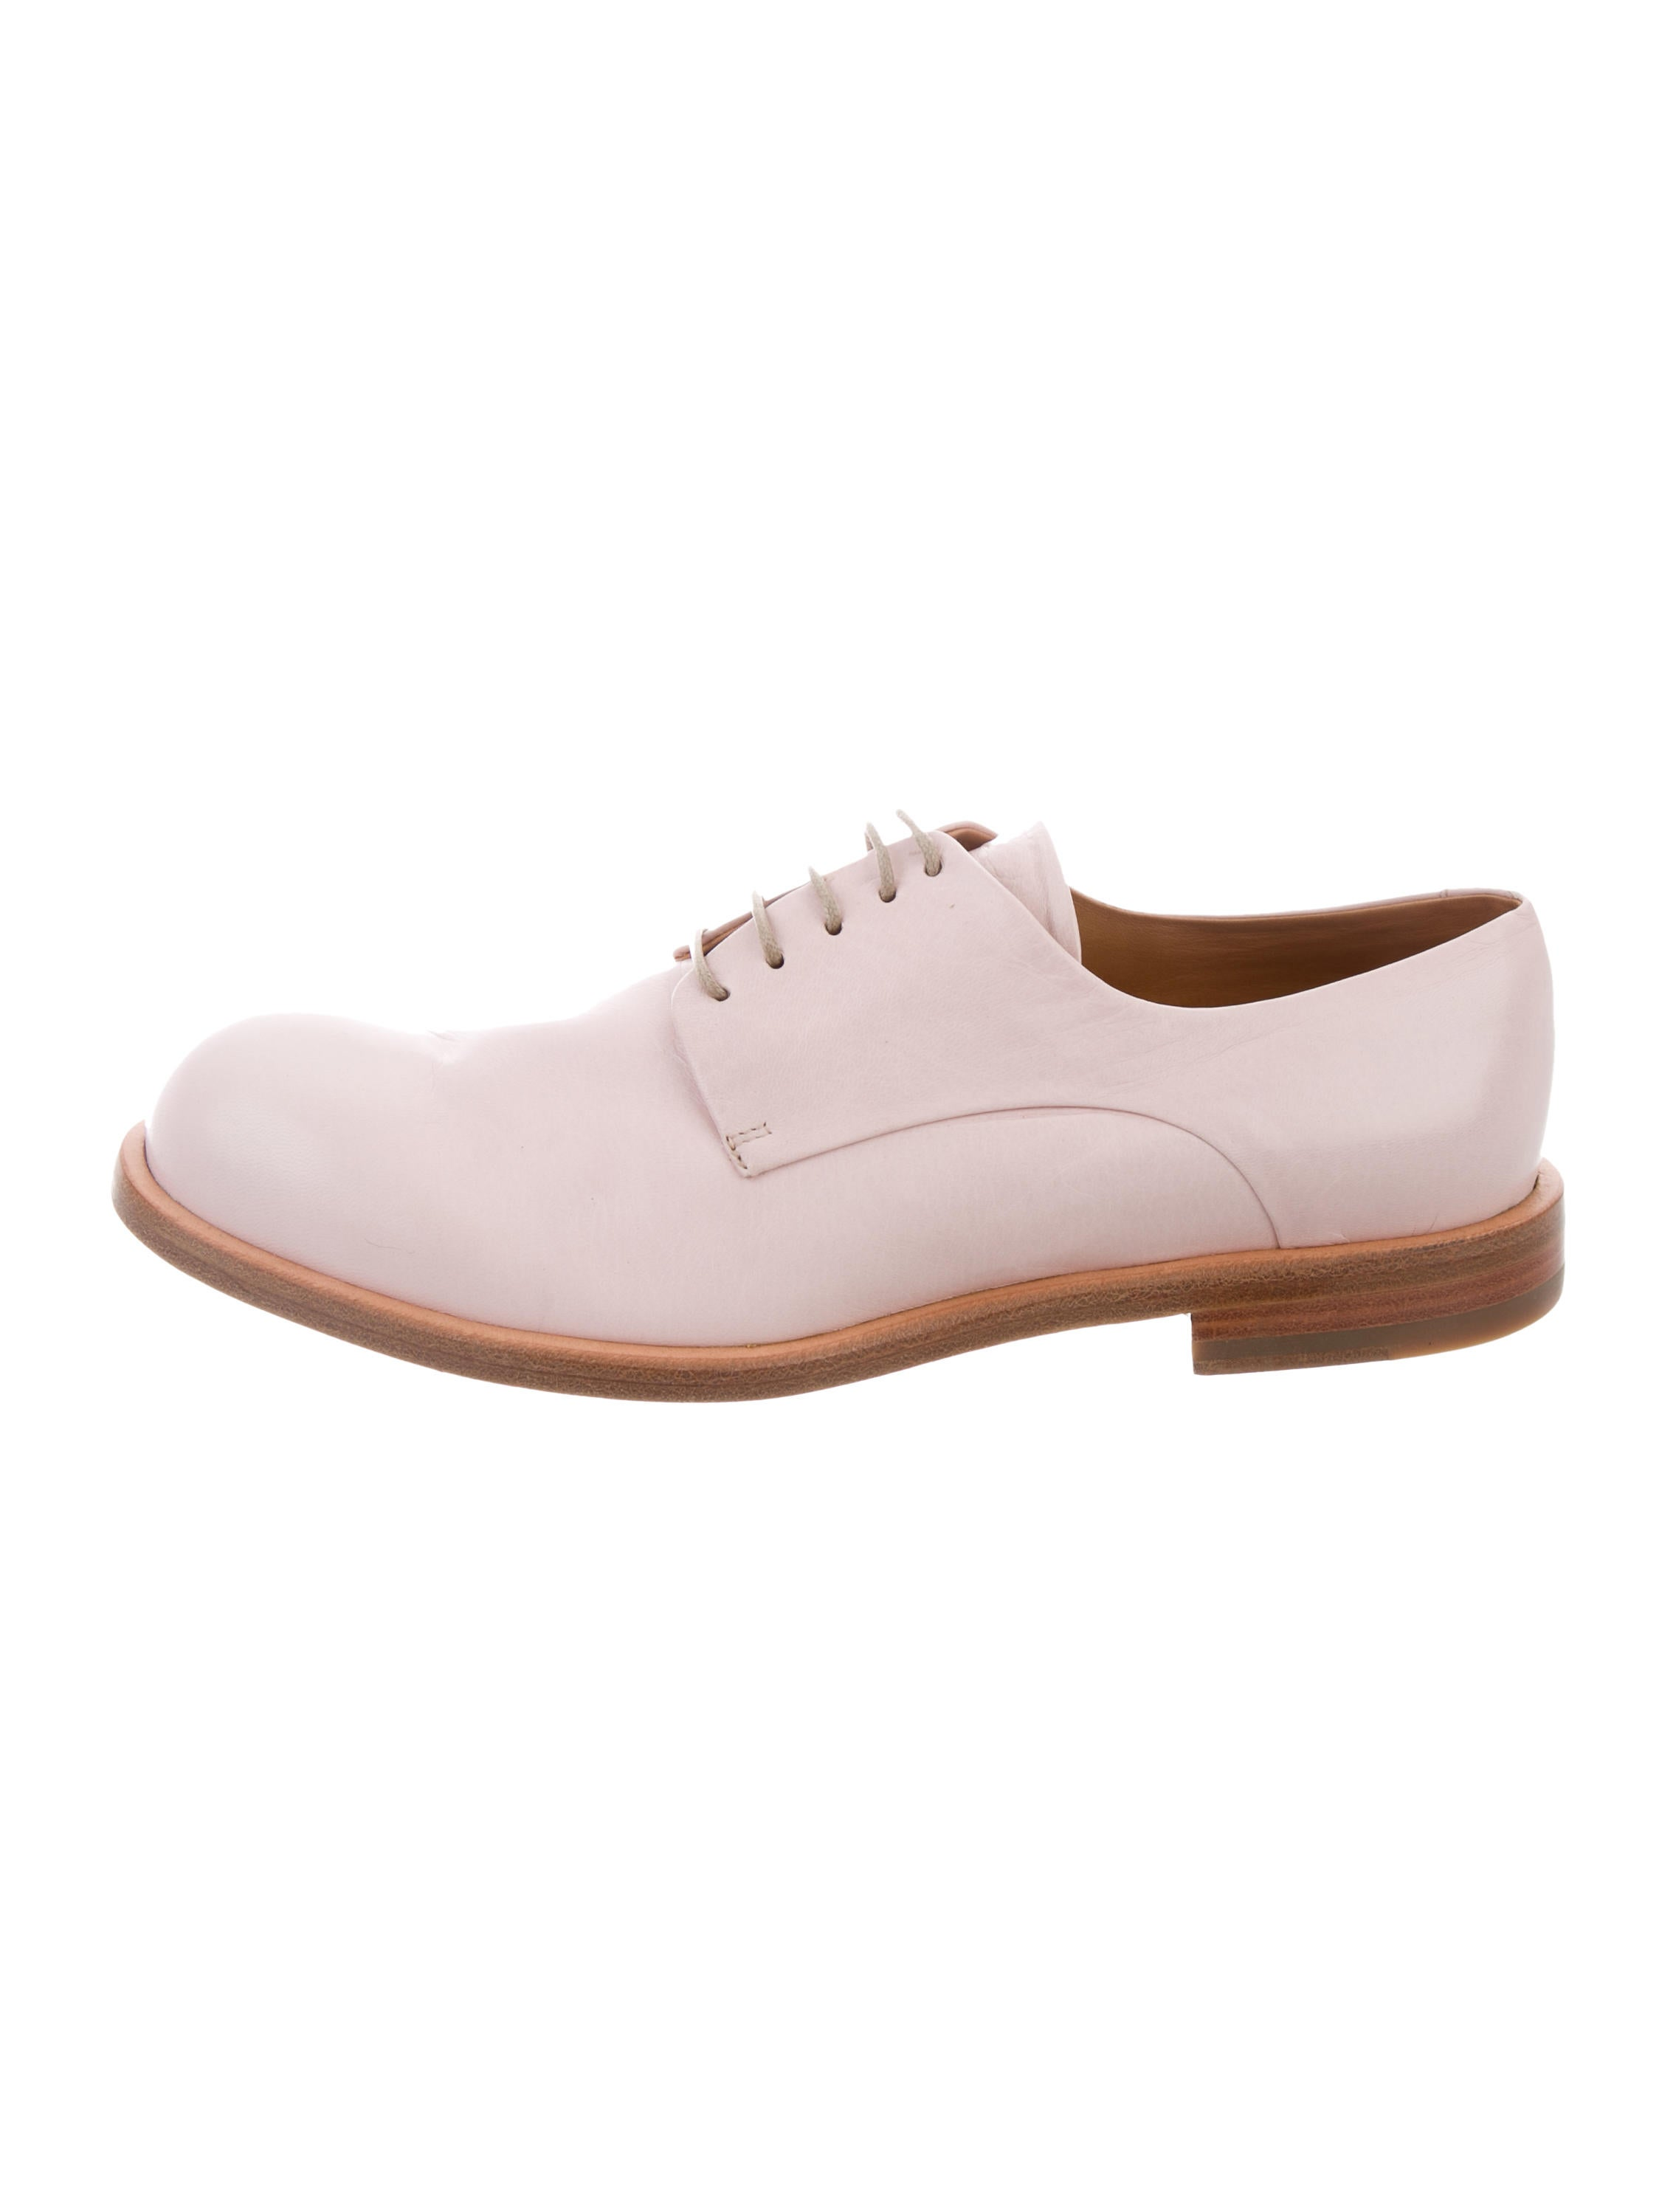 Jil Sander Leather Round-Toe Oxfords sneakernews cheap online clearance best prices clearance 2015 new sale cheapest price xPee7o